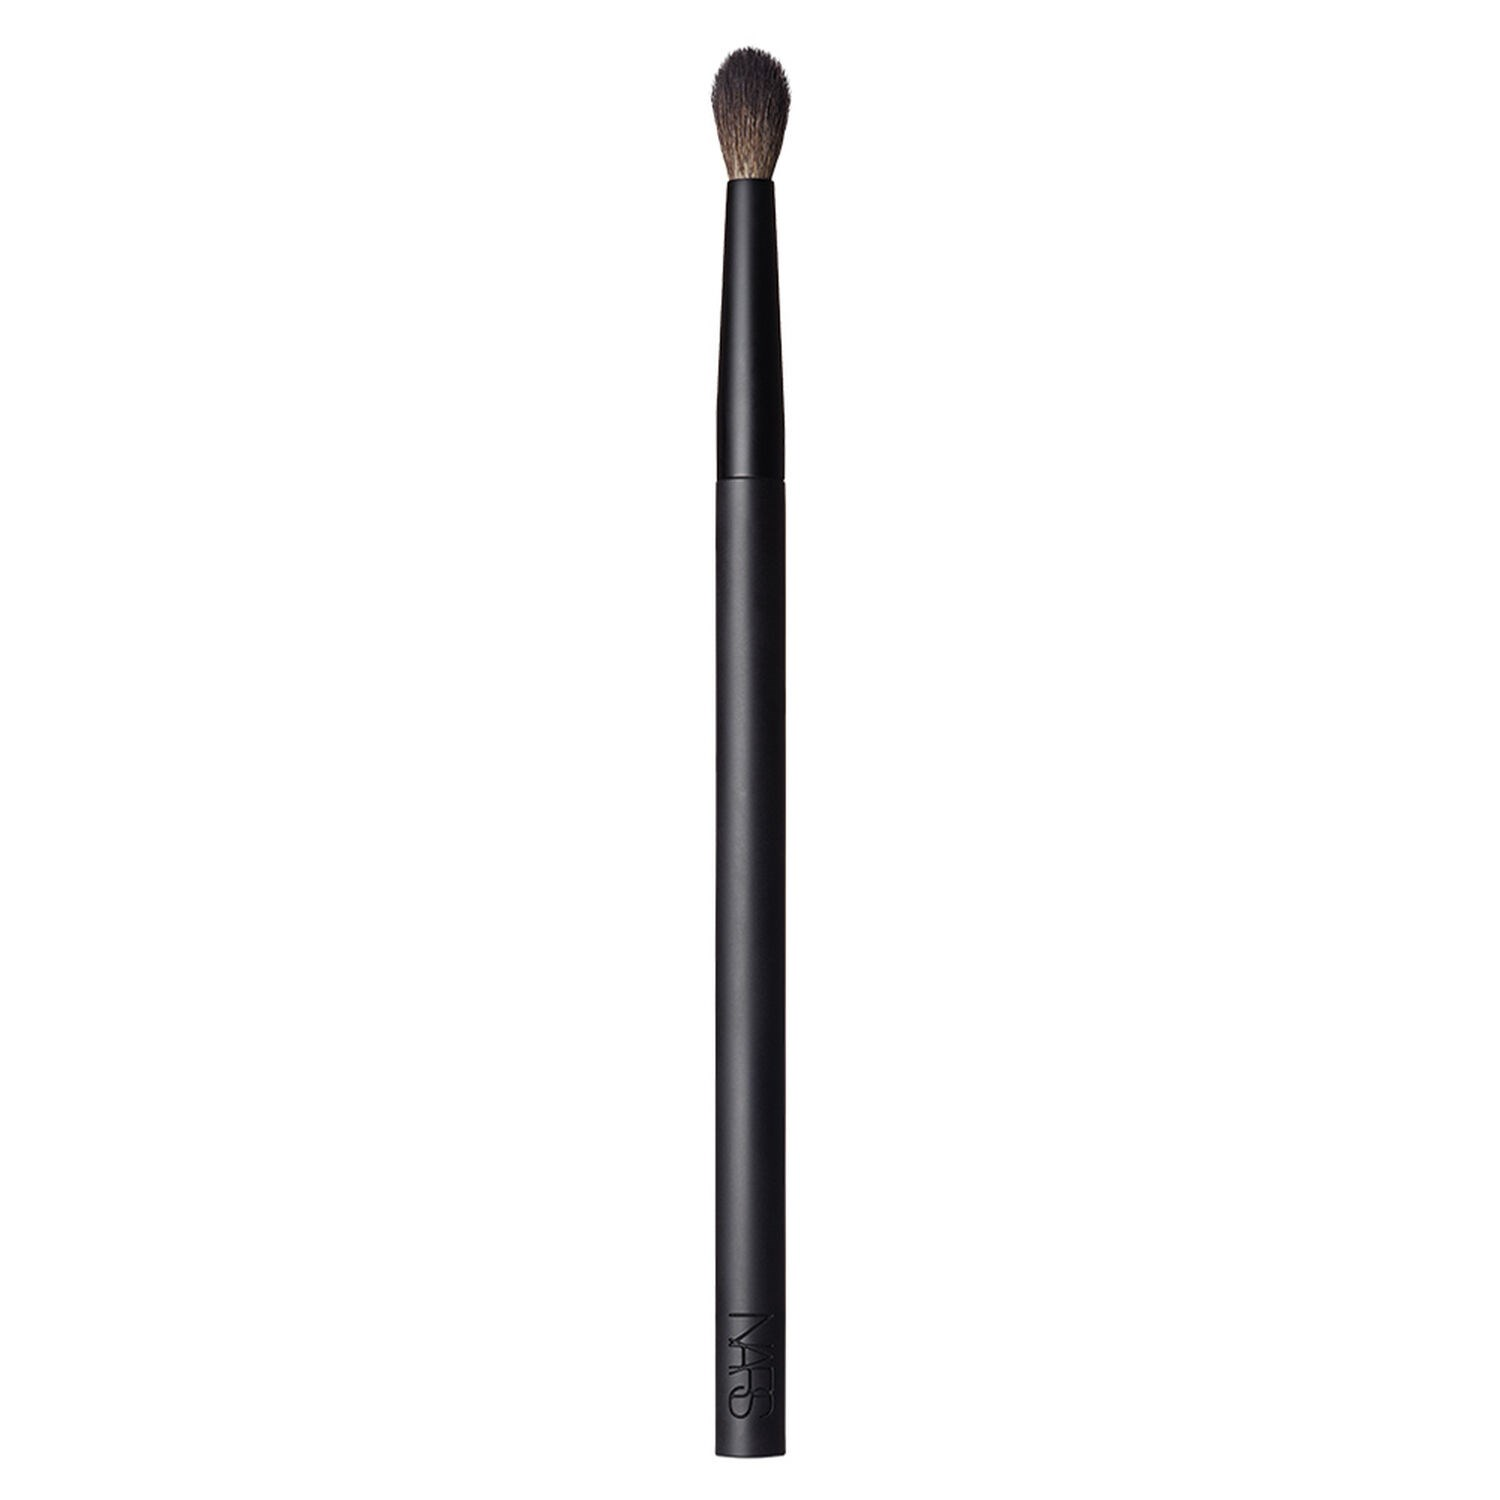 #42:BLENDING EYESHADOW BRUSH 1